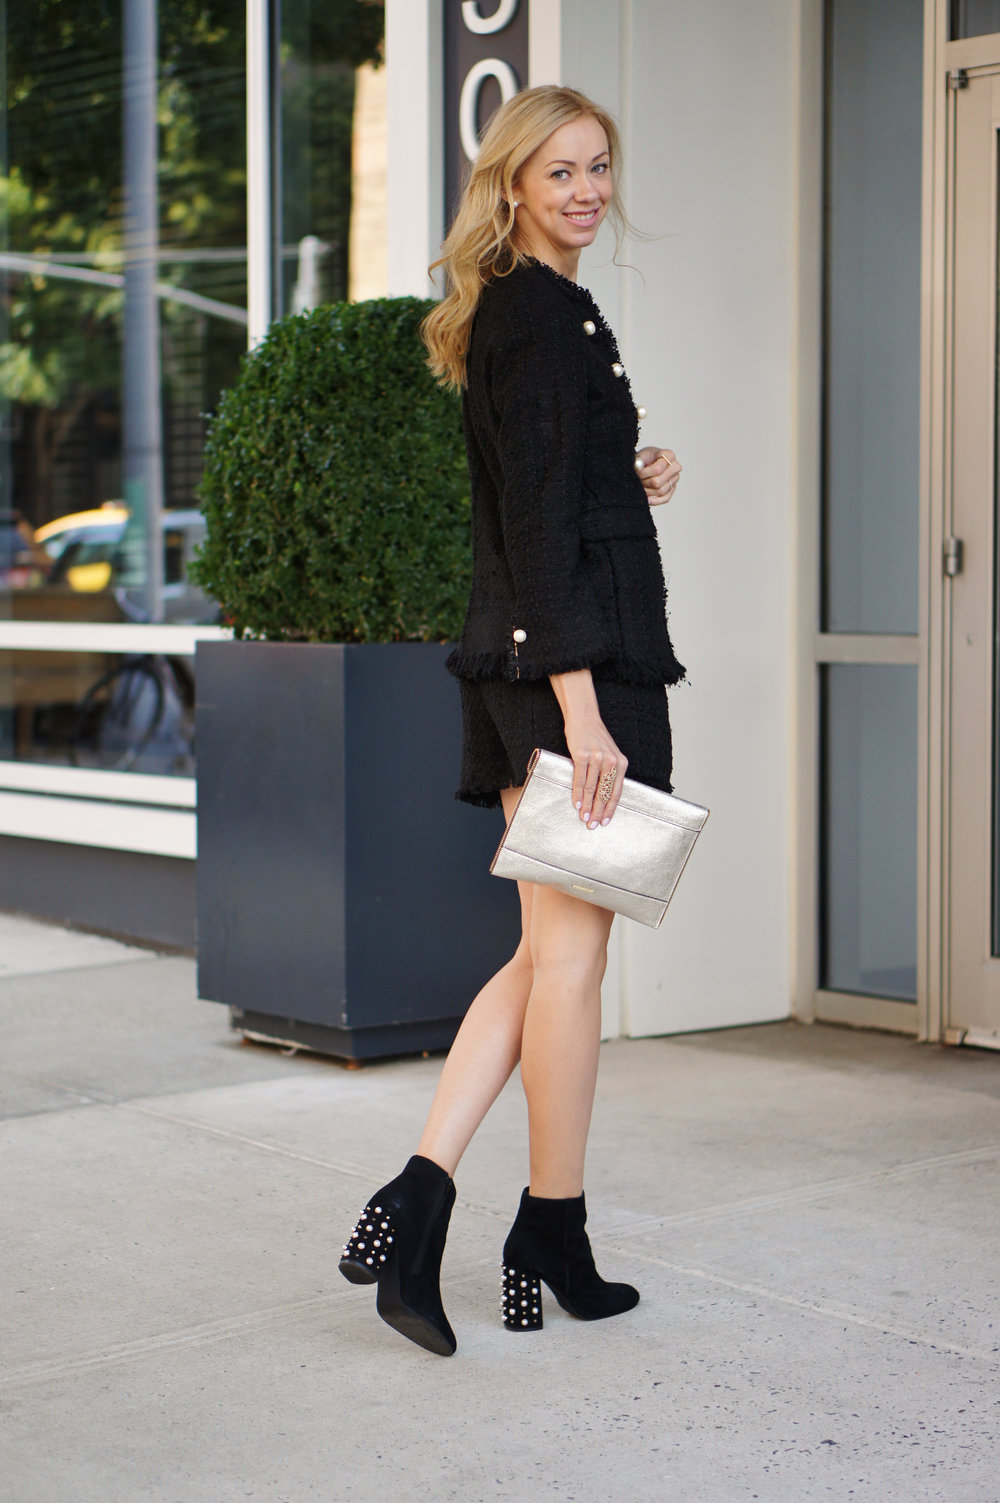 rebecca-minkoff-leo-clutch-black-boots-zara-tweed-skirt-jacket-black.jpg